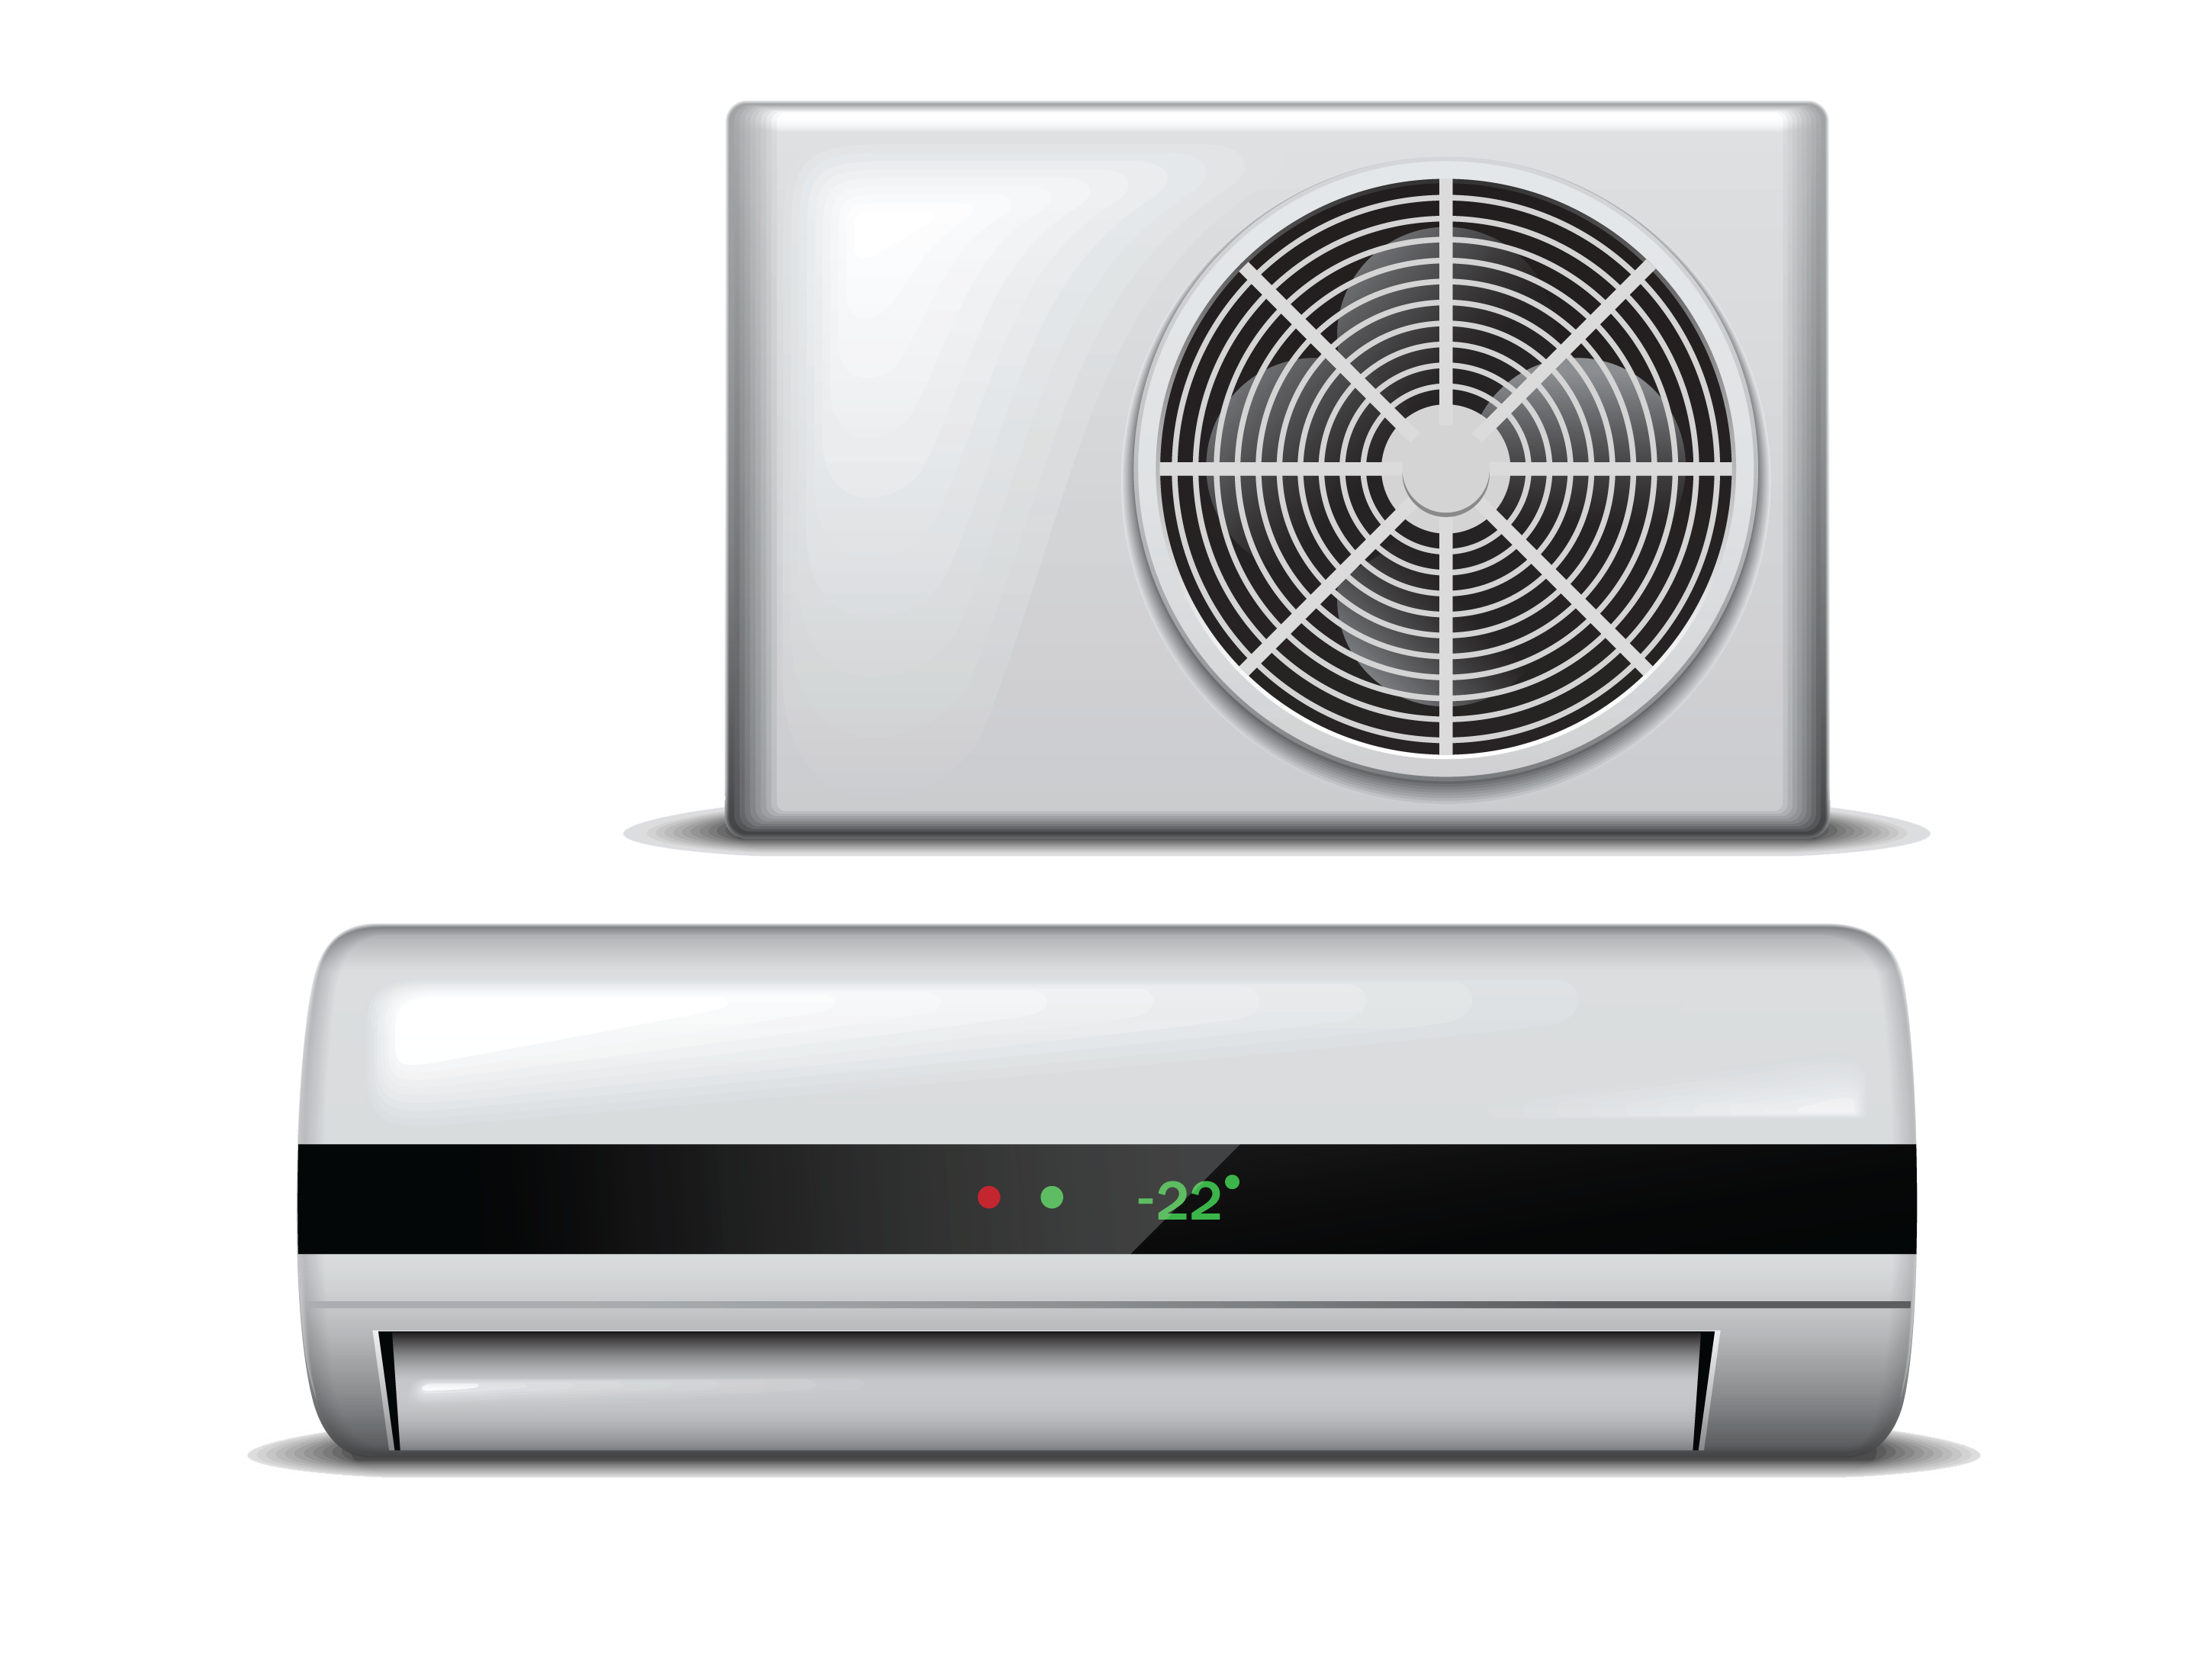 6 Reasons Why You Should Go For an Air Cooler over an AC